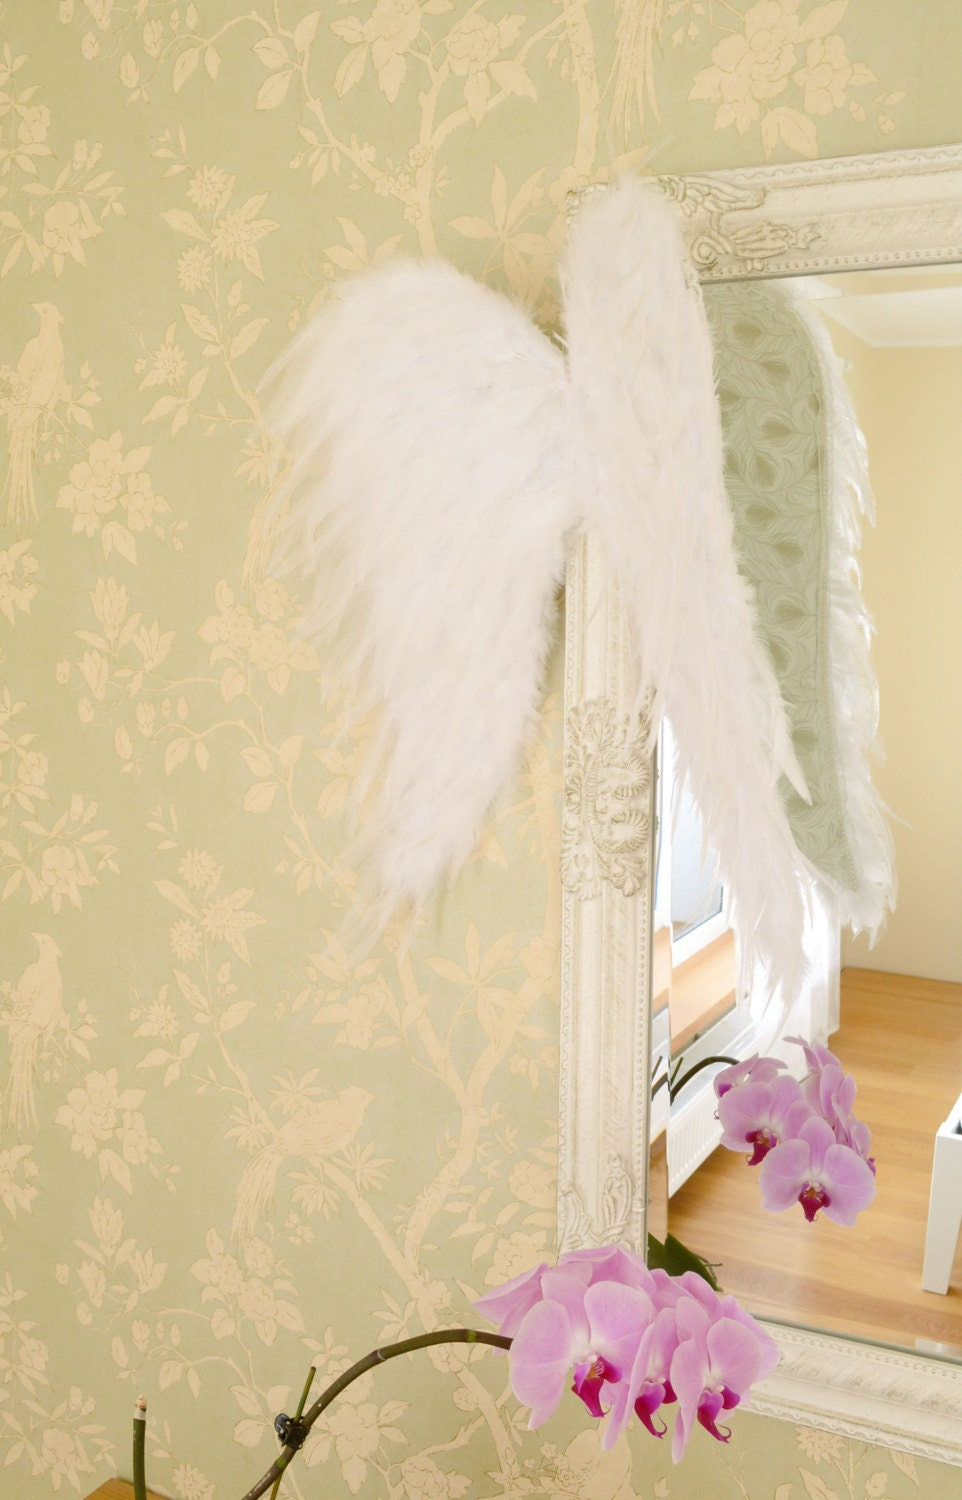 Large Angel Wings Wall Decor Christmas Gift Ailes